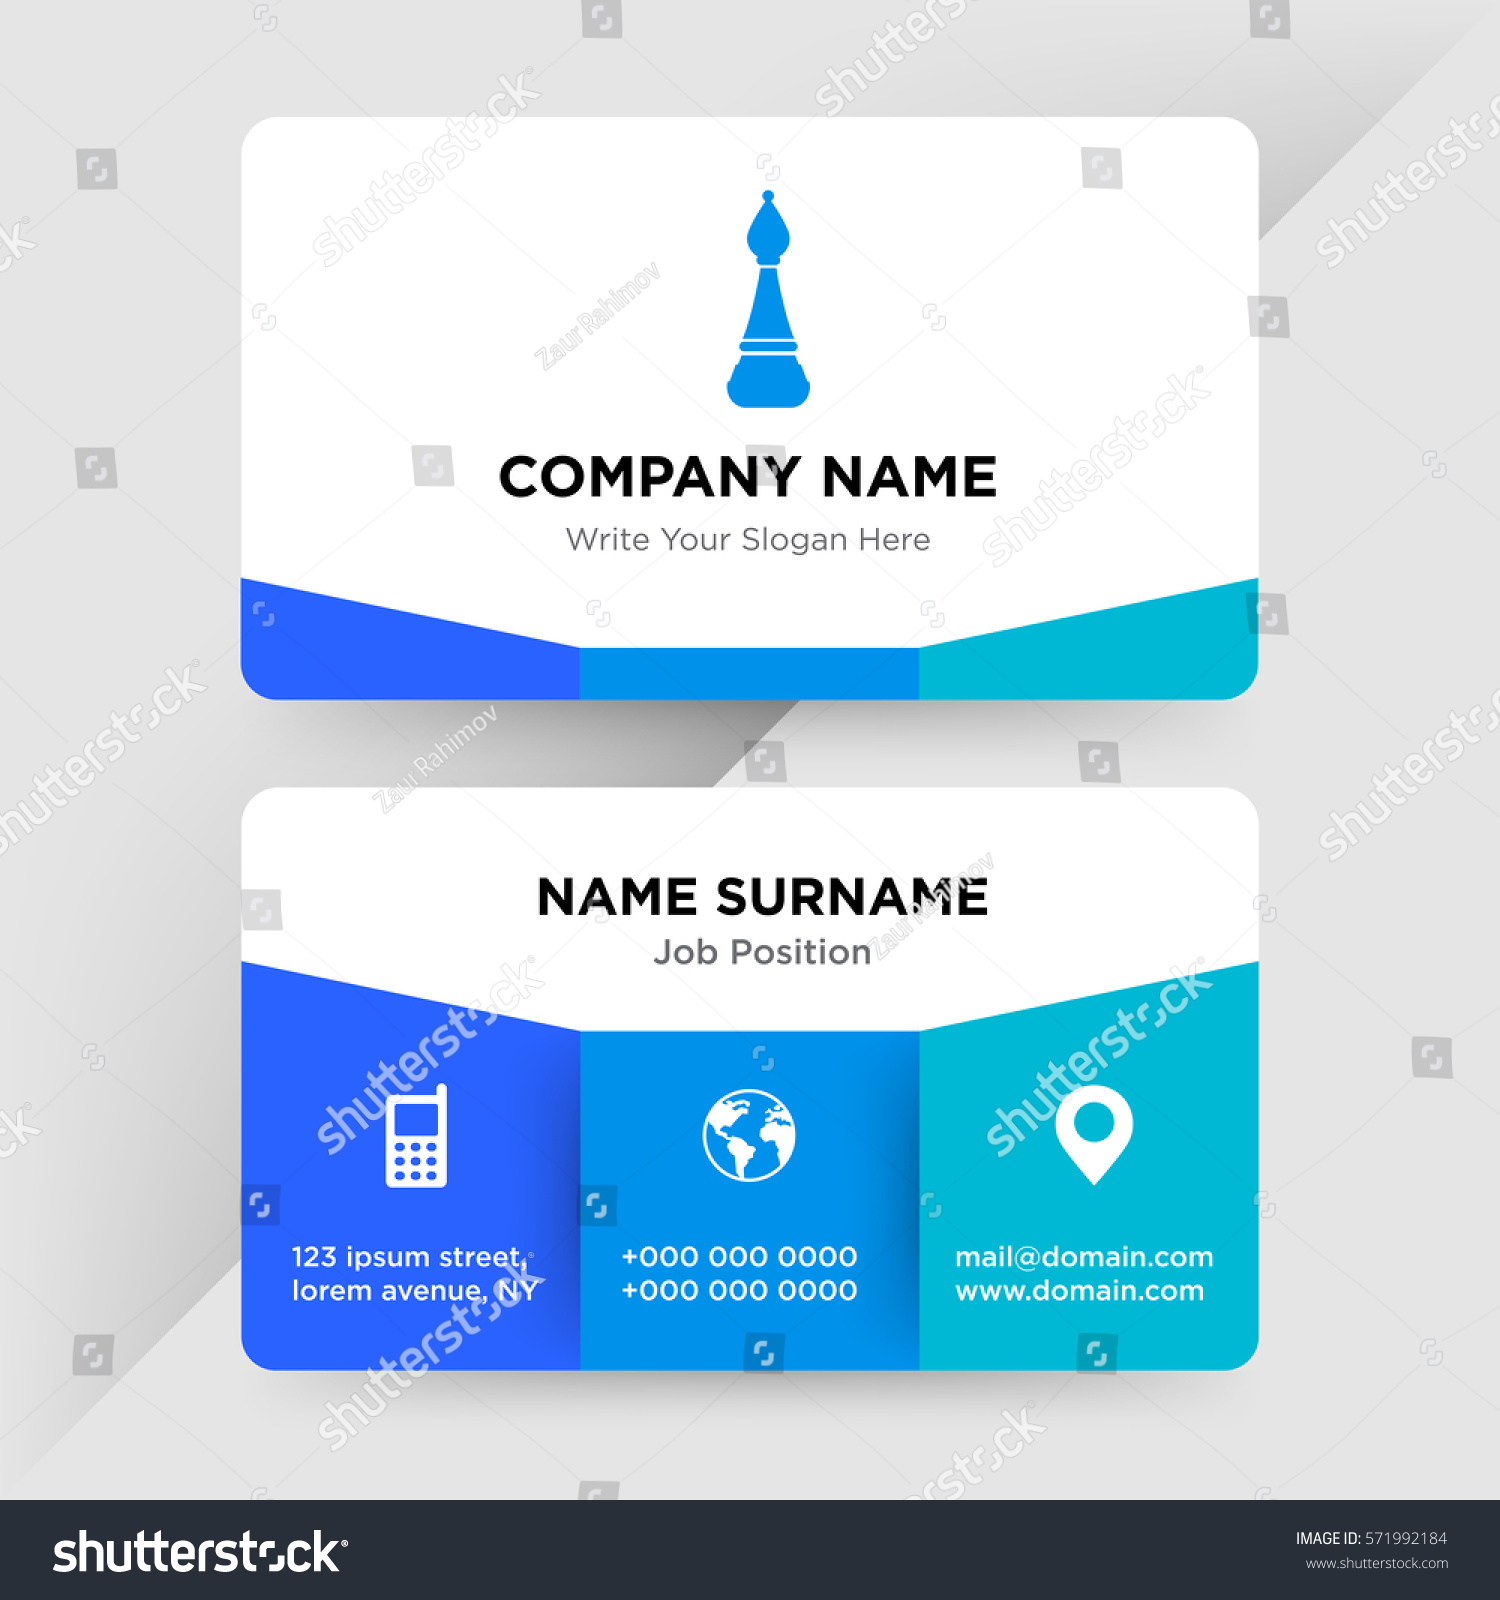 Template Business Card Management Chess School Stock Photo (Photo ...